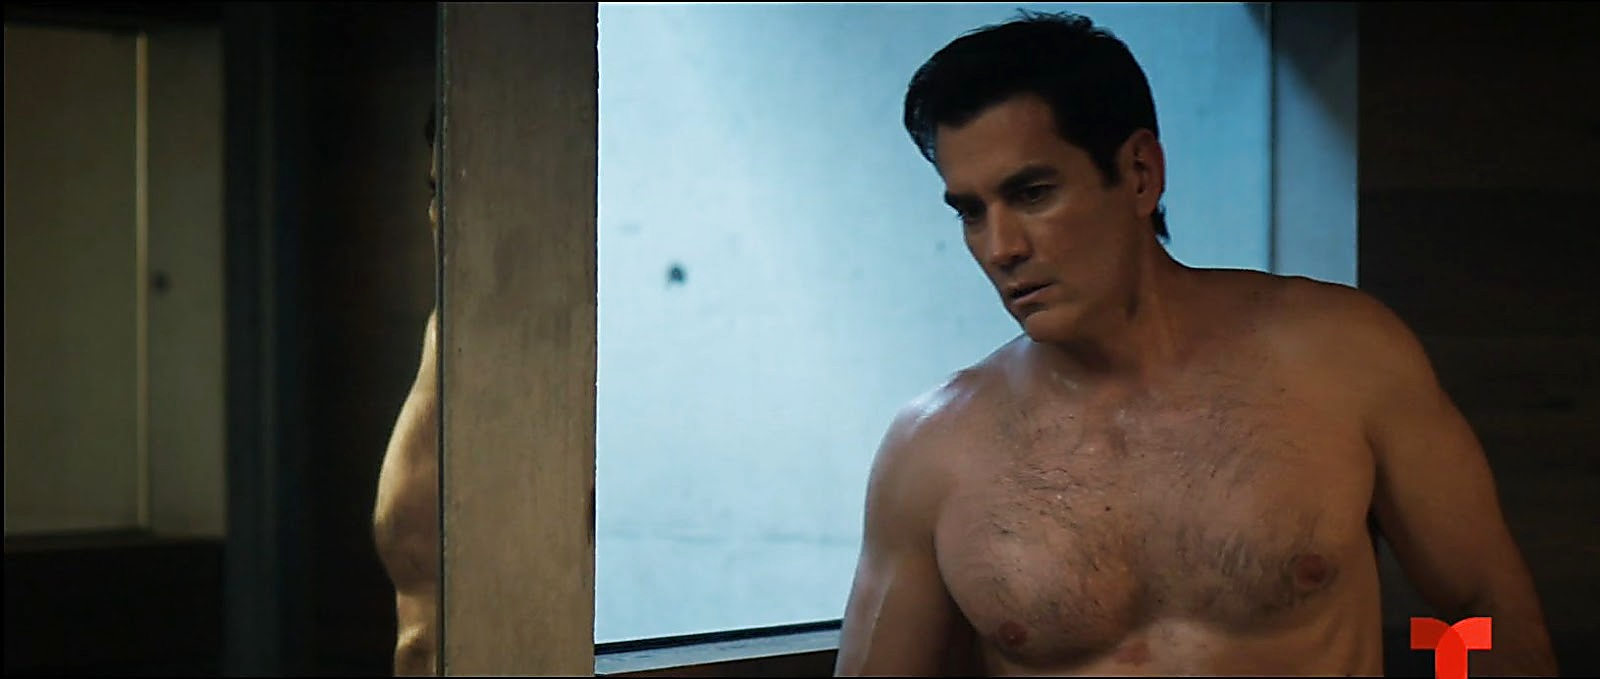 David Zepeda sexy shirtless scene February 23, 2020, 1pm